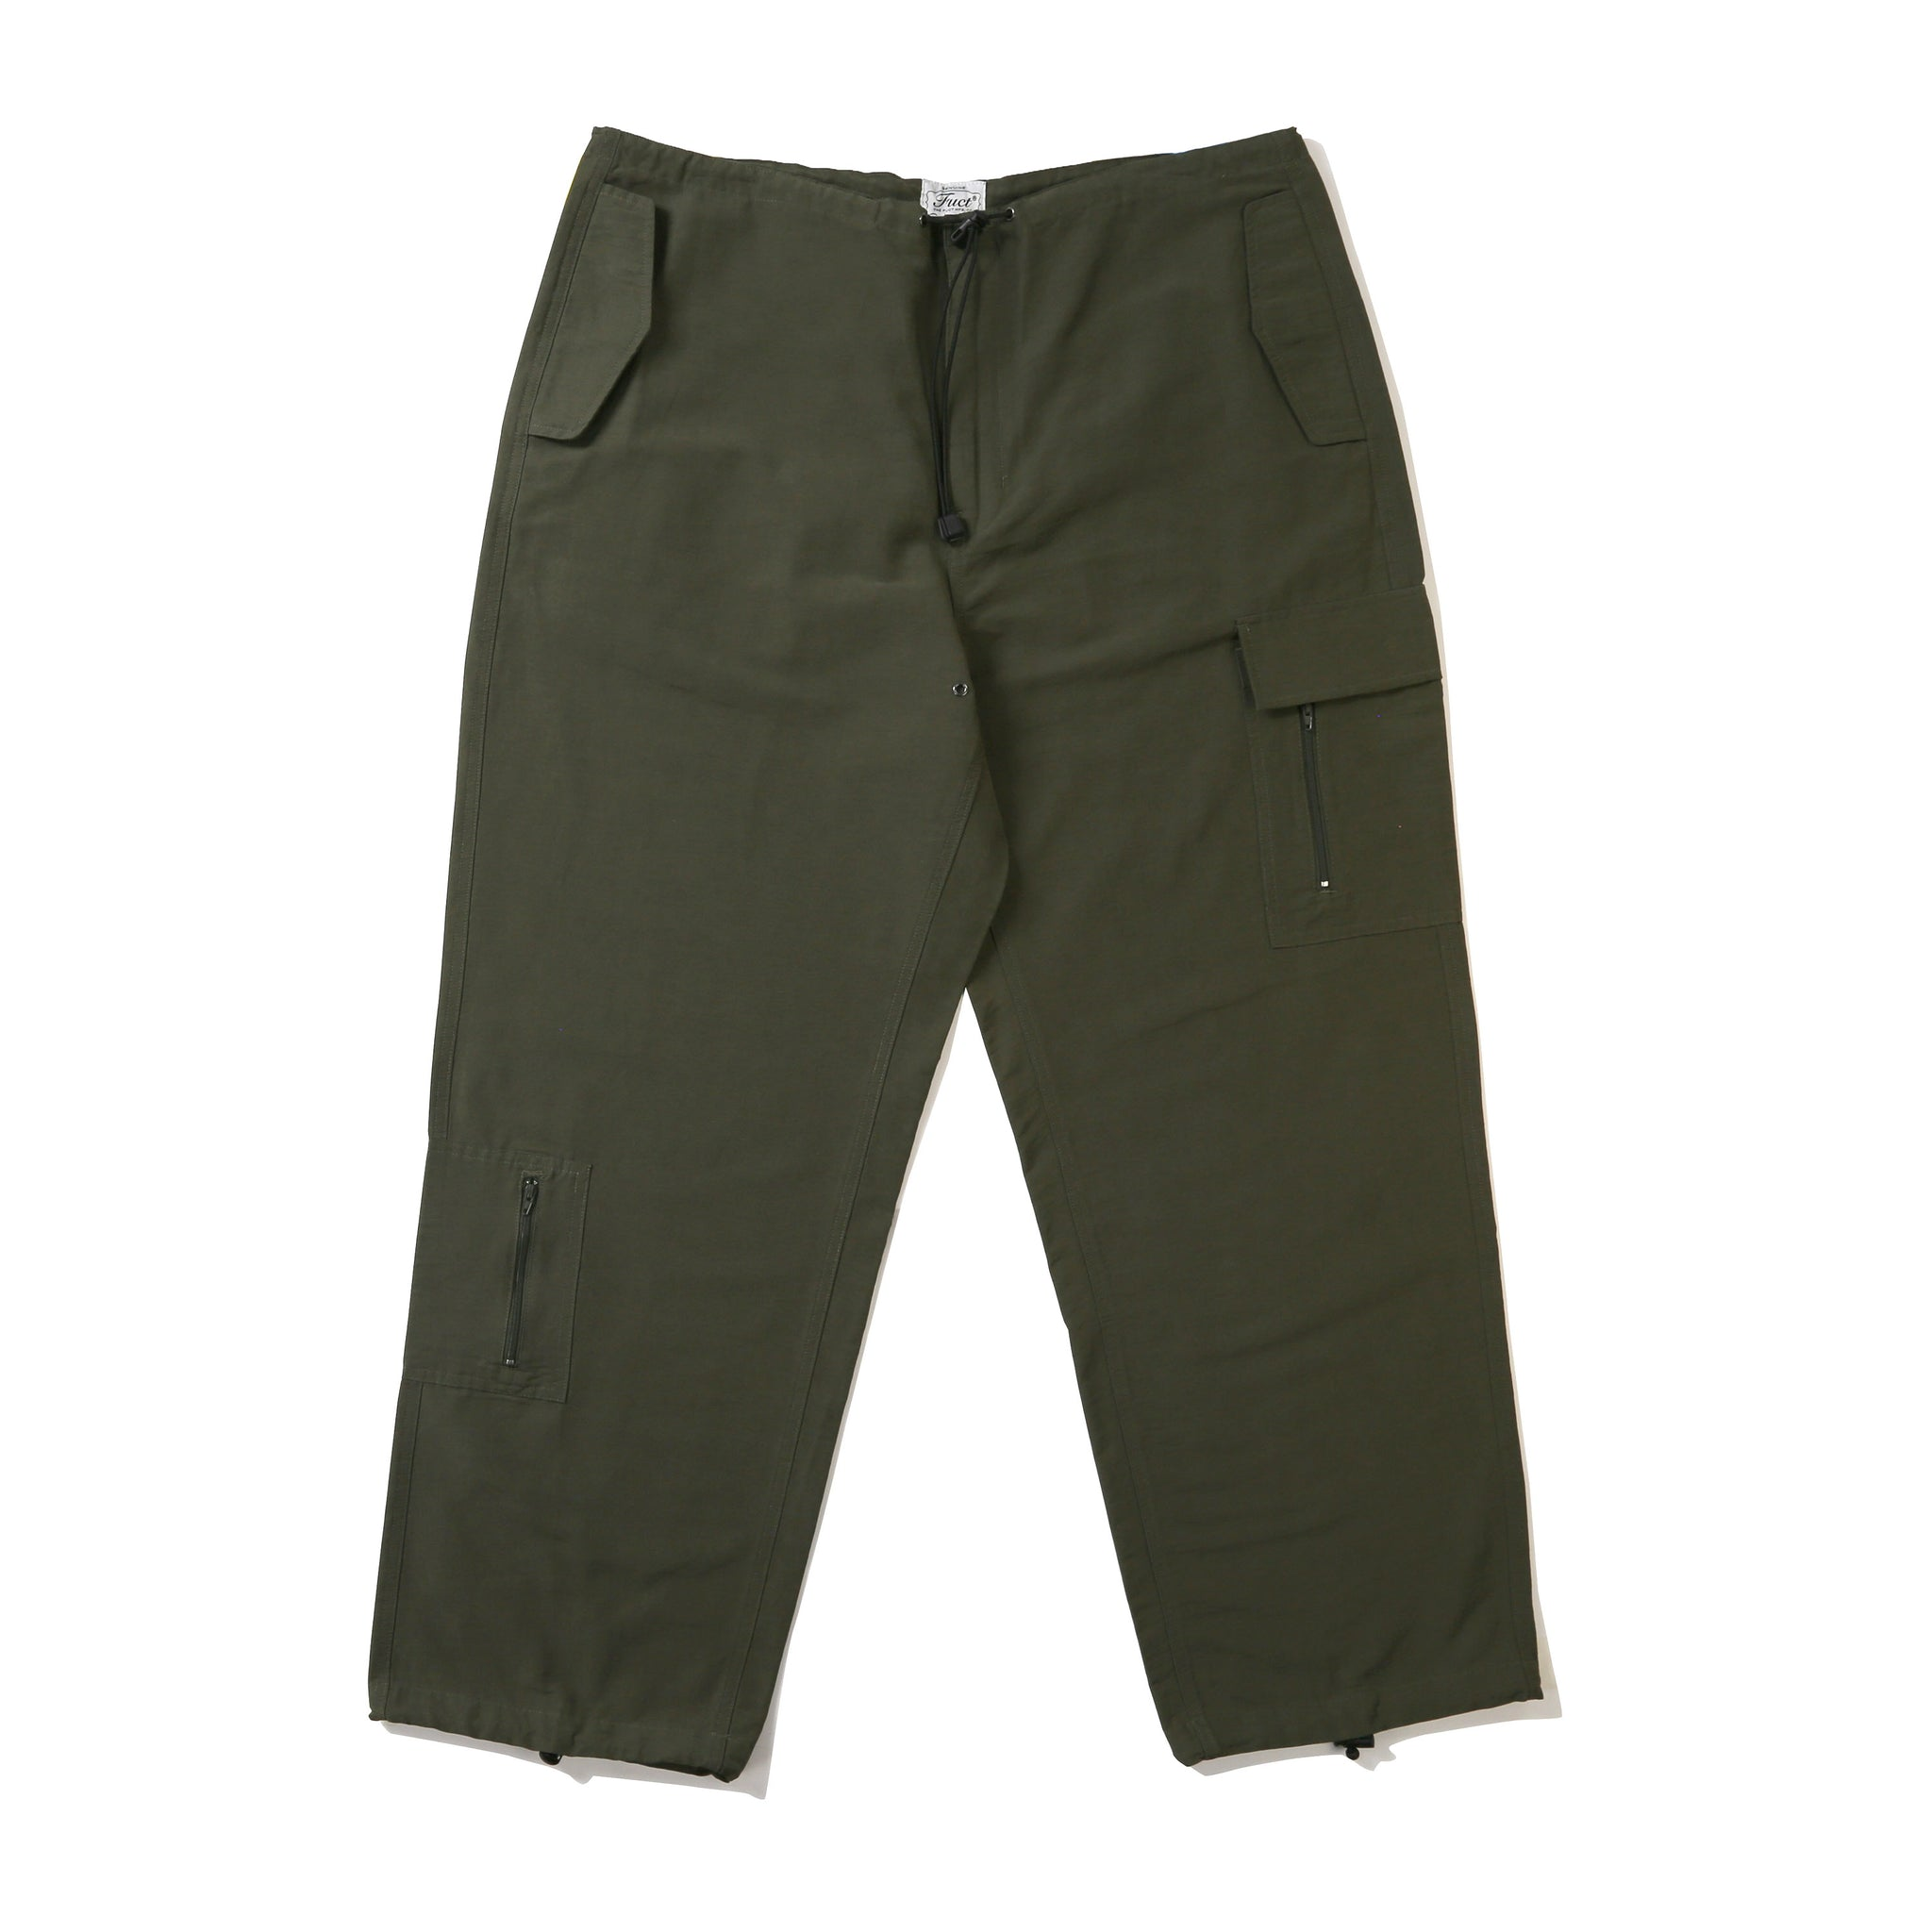 ALL PURPOSE NYLON UTILITY PANT